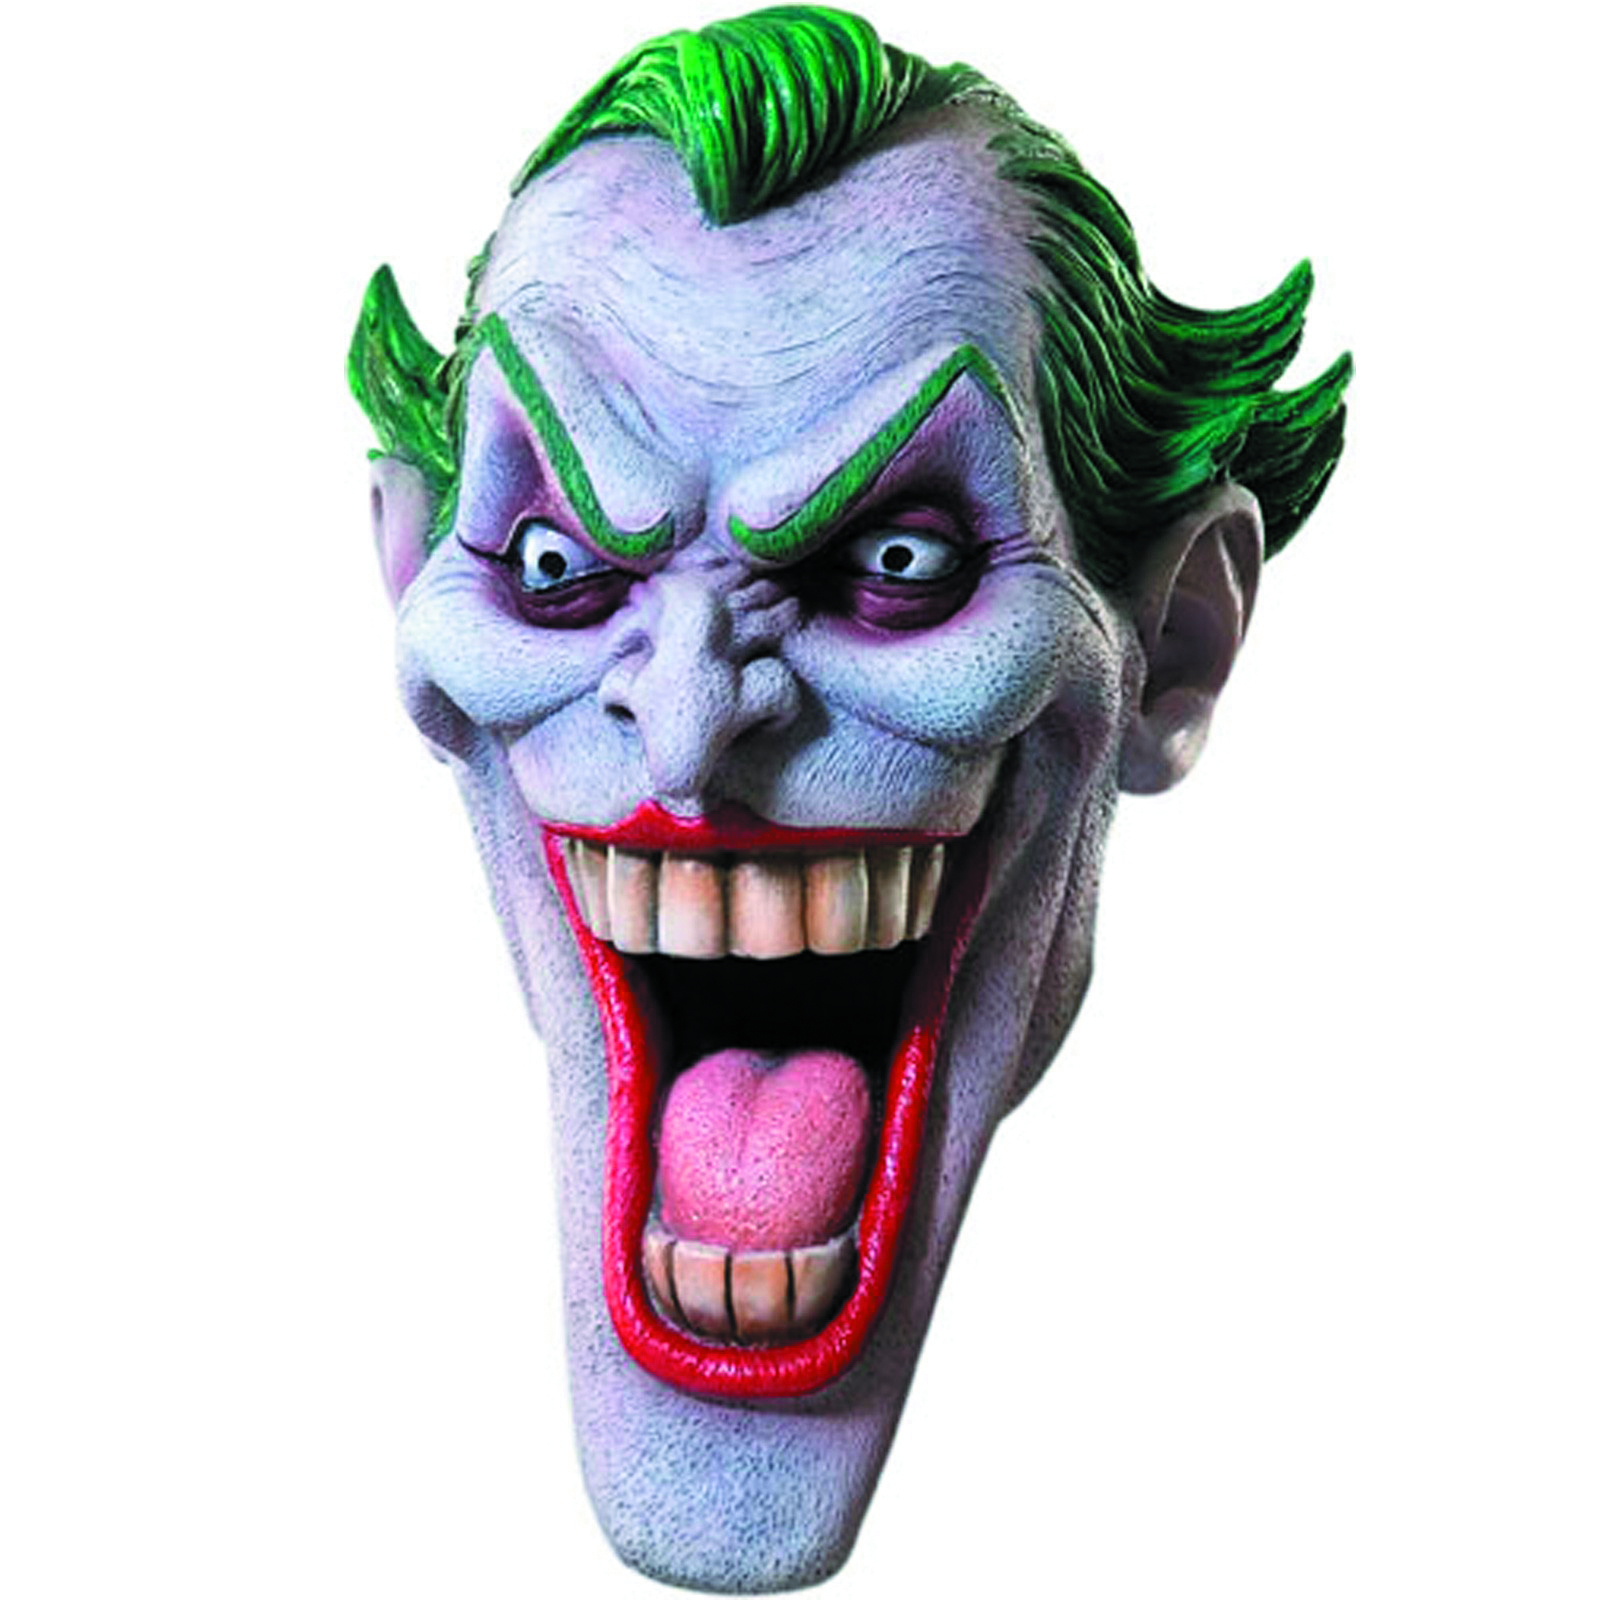 JOKER DLX LATEX MASK